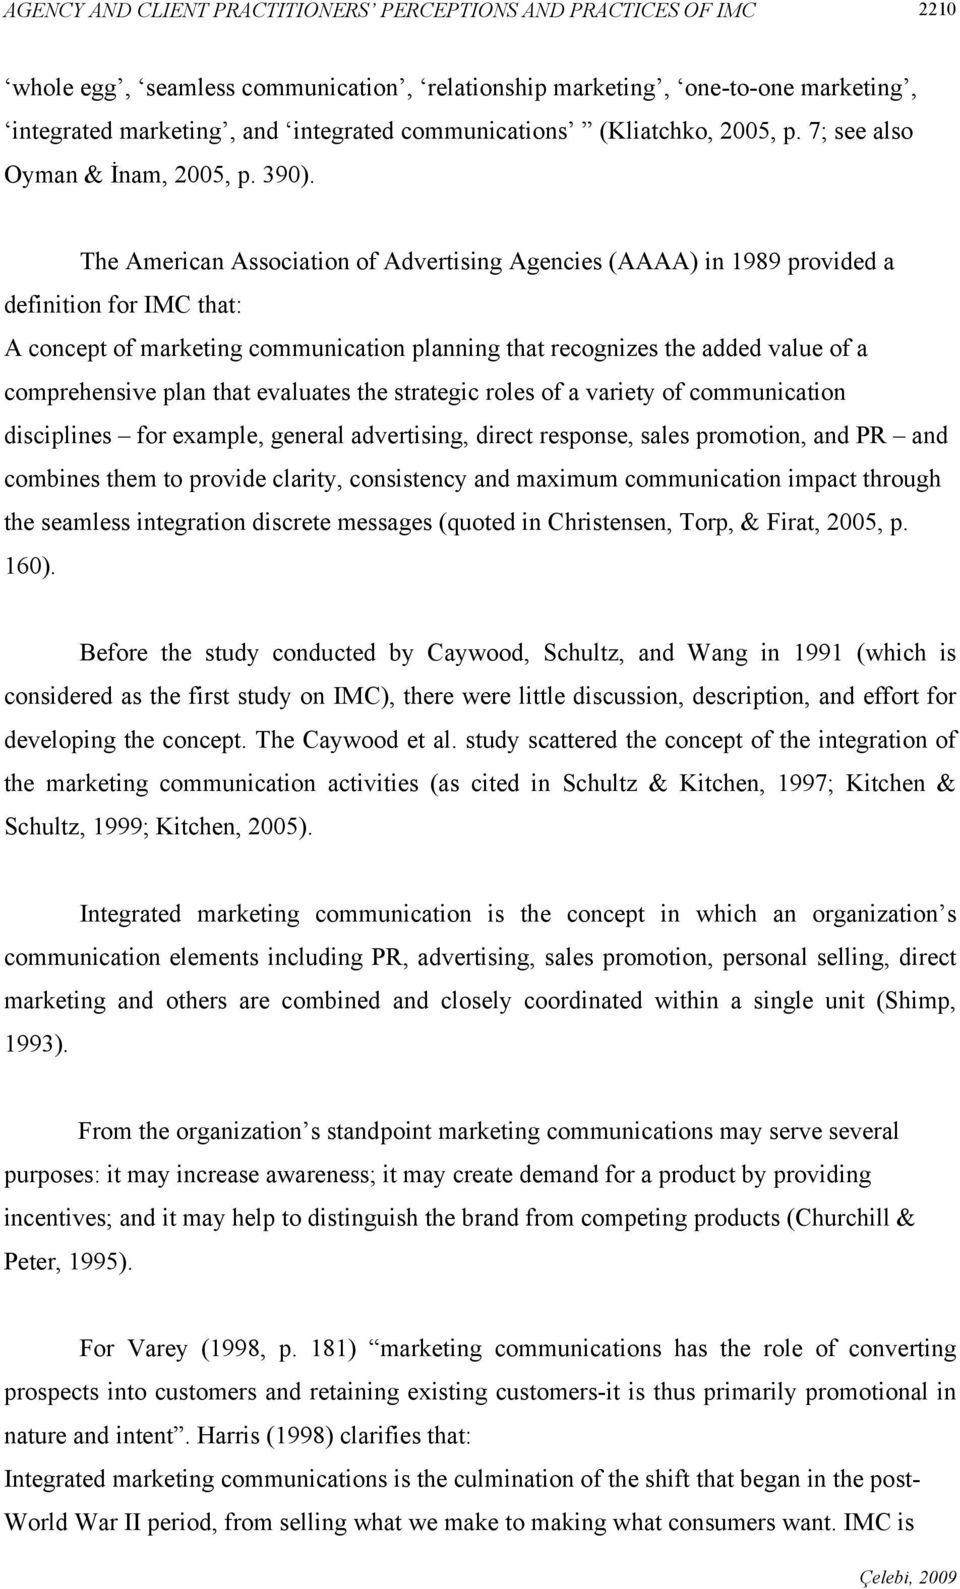 The American Association of Advertising Agencies (AAAA) in 1989 provided a definition for IMC that: A concept of marketing communication planning that recognizes the added value of a comprehensive